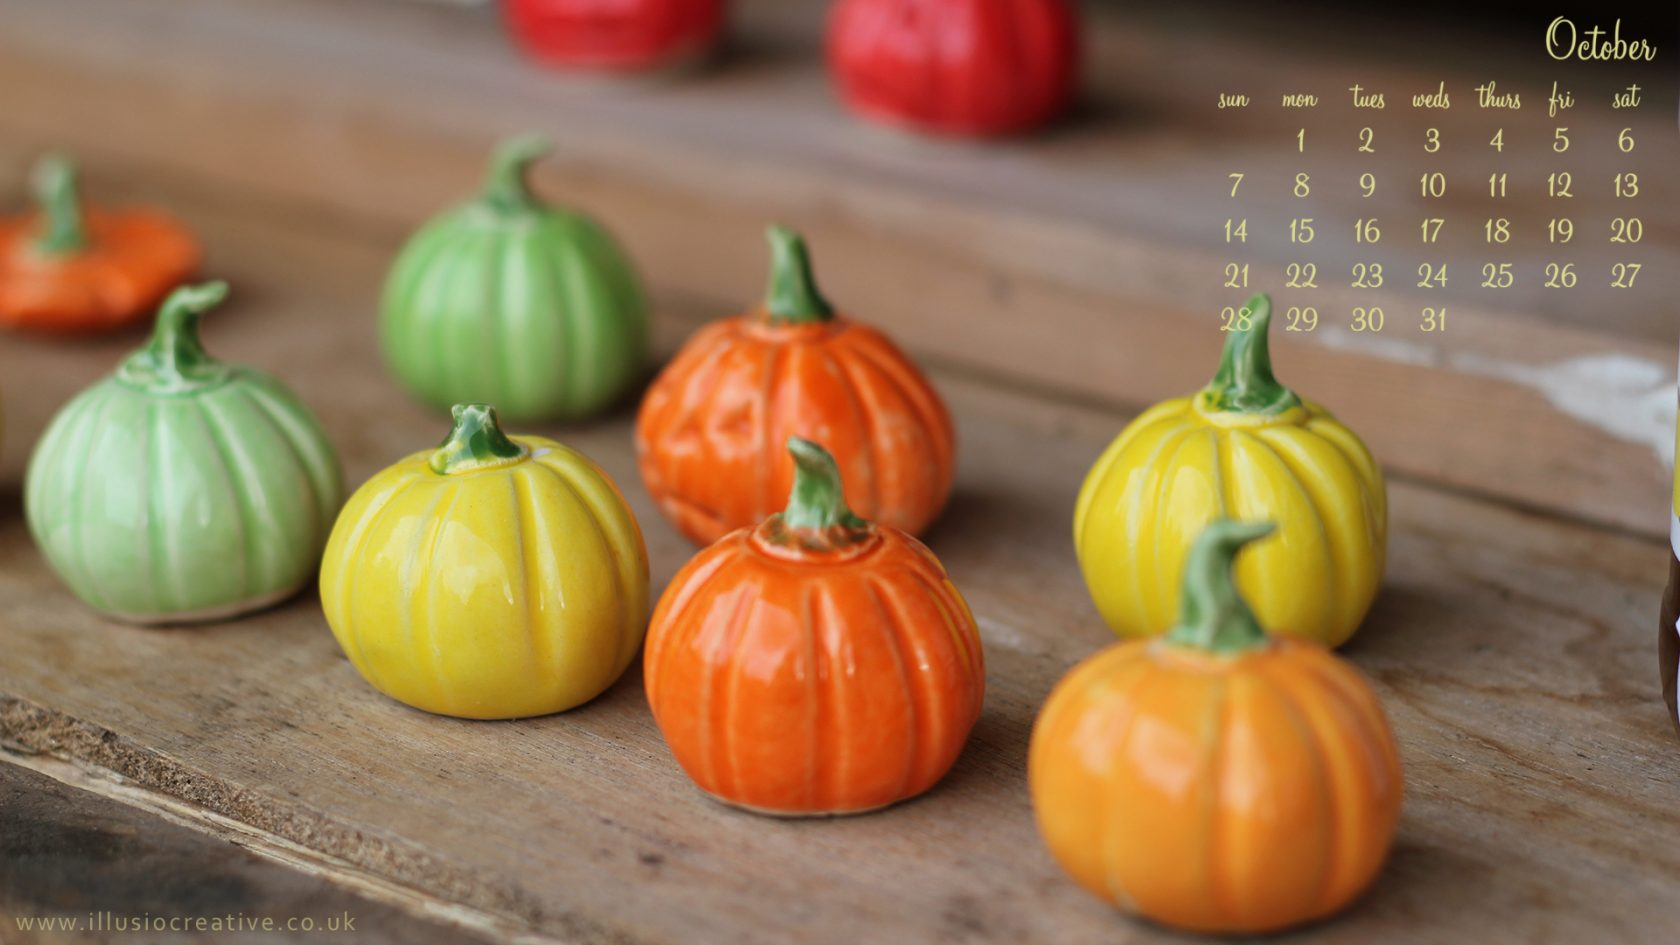 October - 1290 x1080 -Little Pumpkins